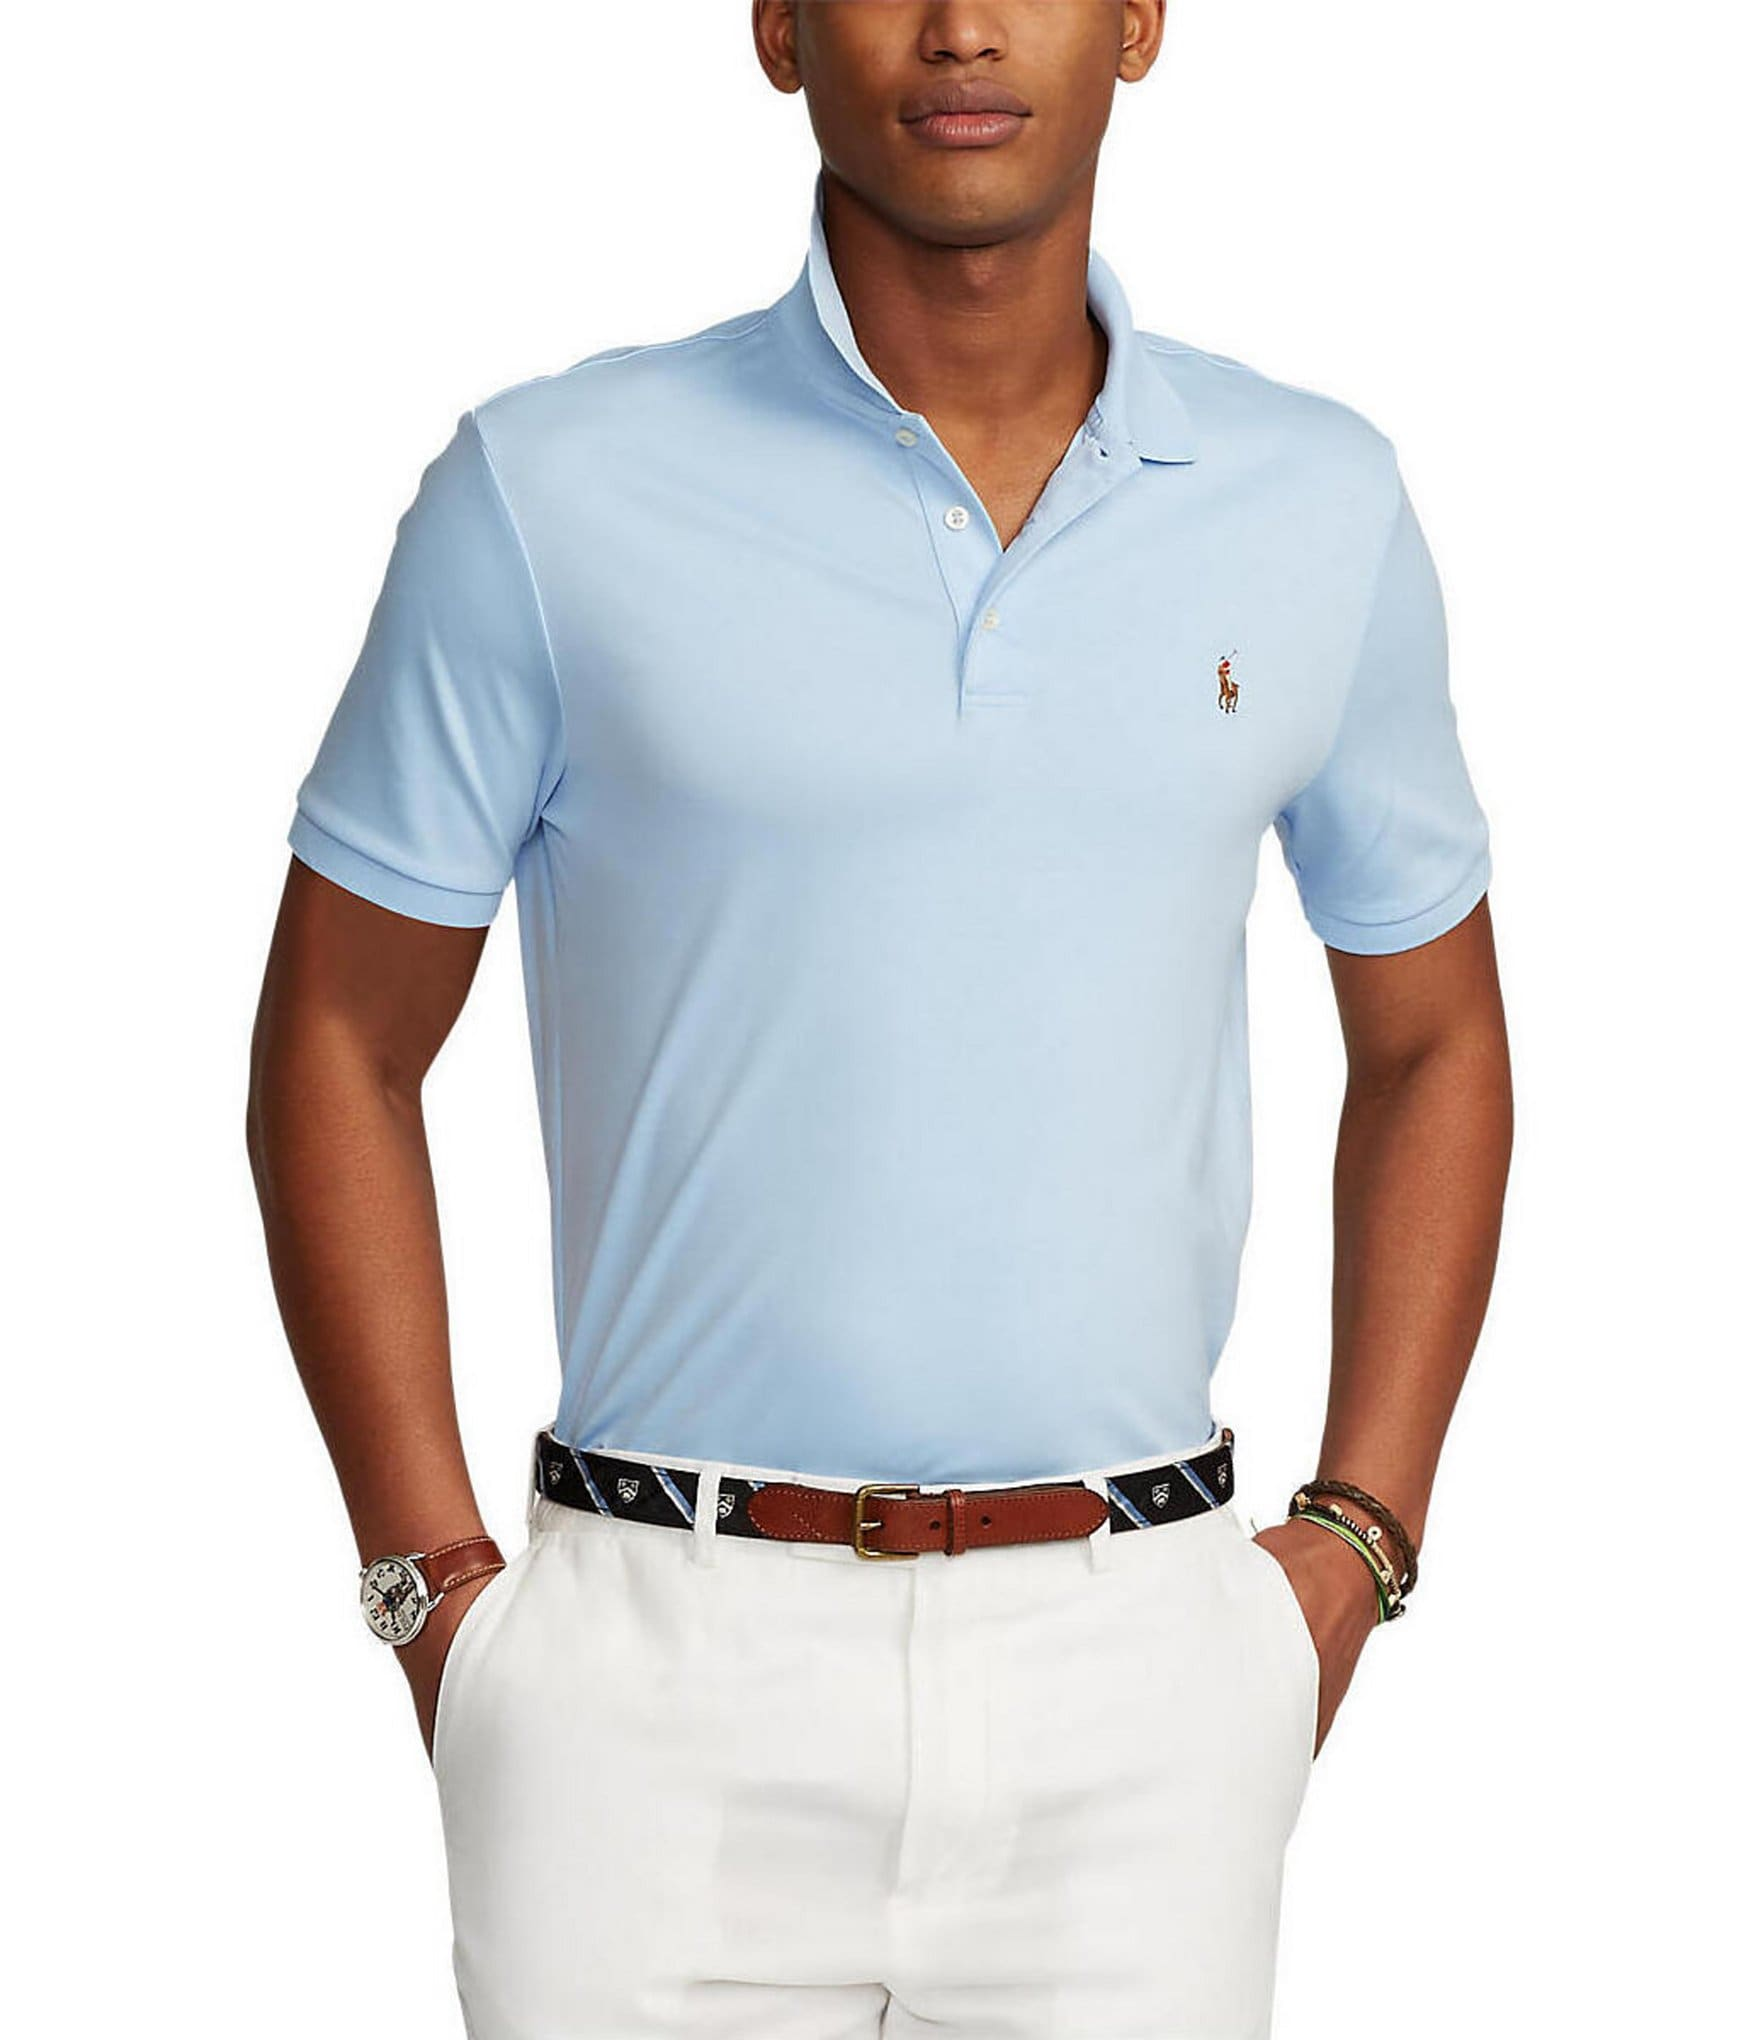 55c14f9bc31ce Polo Ralph LaurenClassic-Fit Cotton Soft Short-Sleeve Solid Polo Shirt